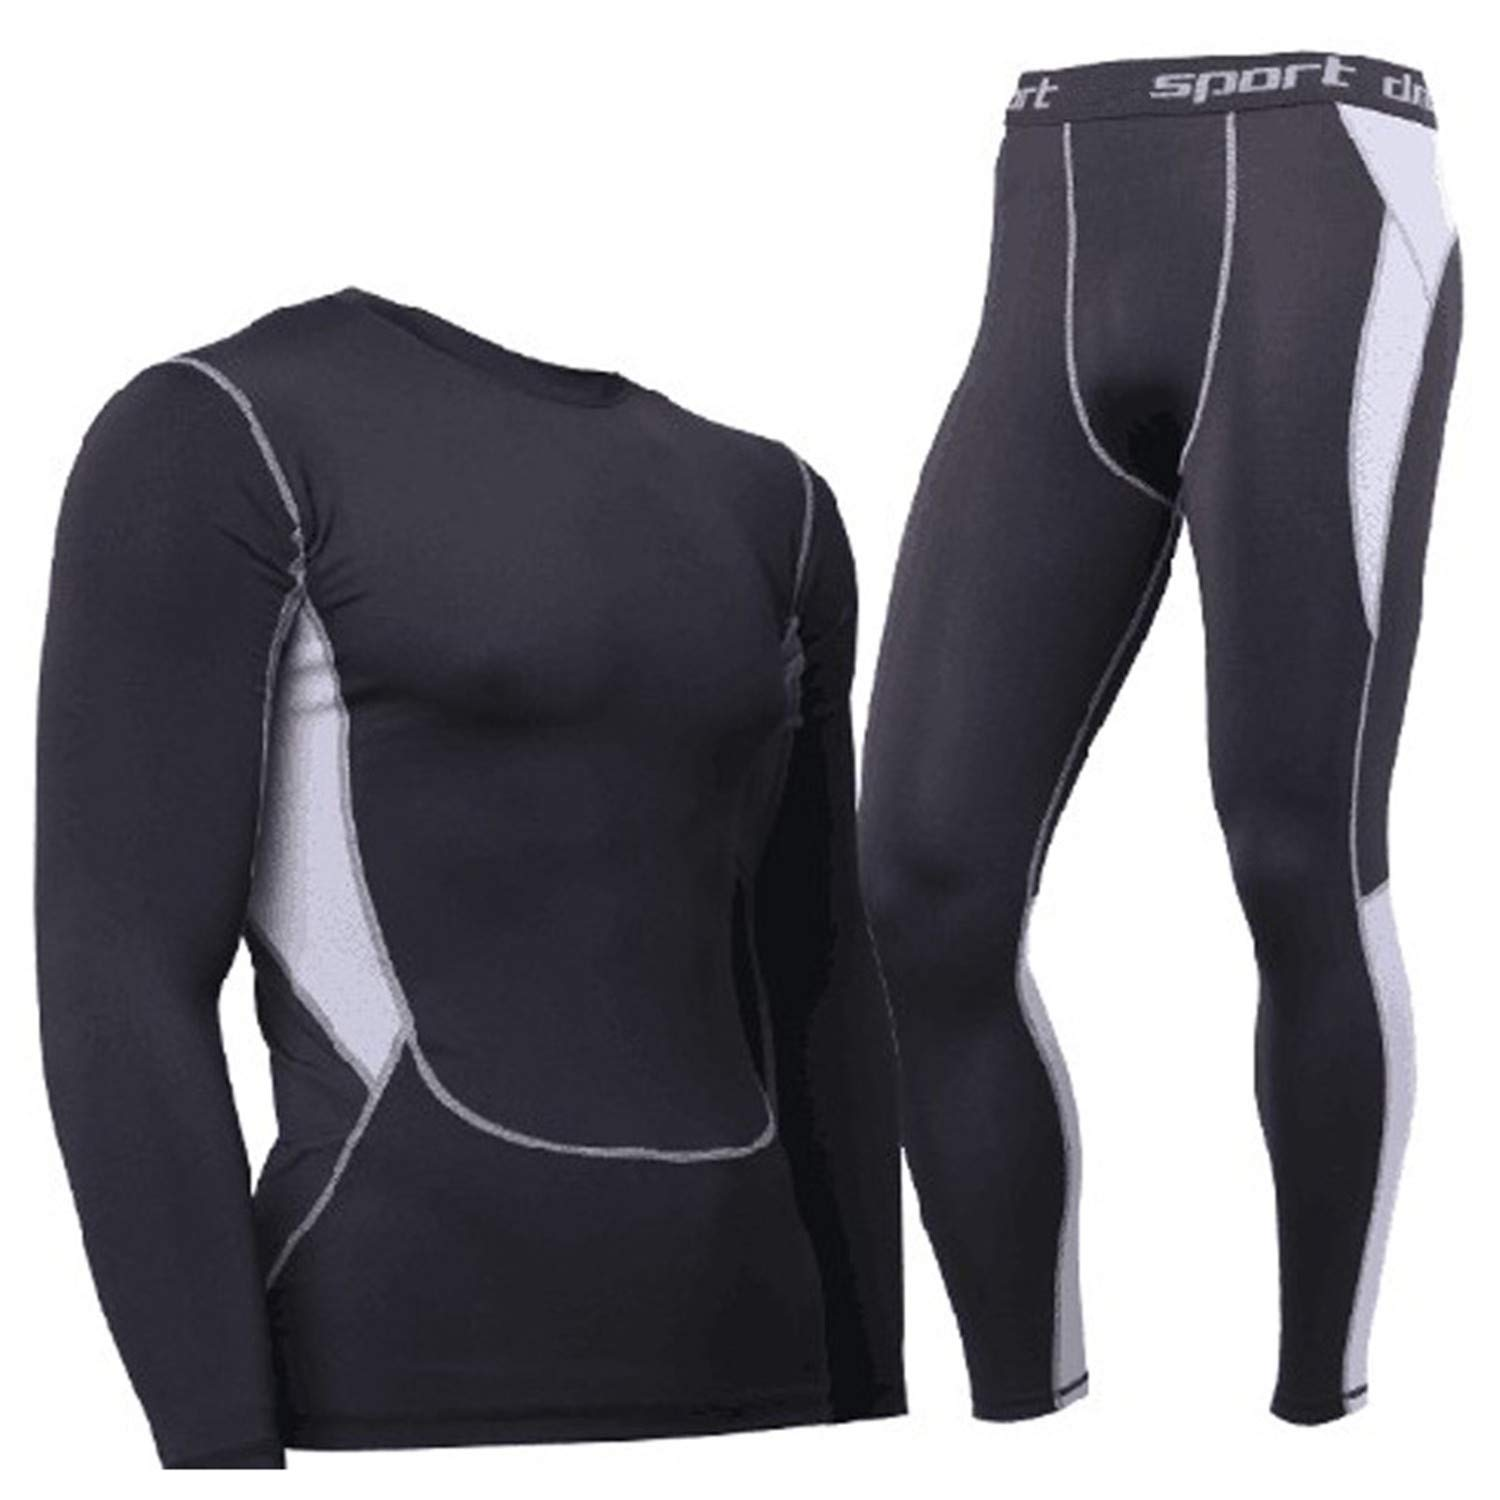 Hot-Dry Thermal Underwear Sets Men Winter Compression Thermo Underwear Mens Long Johns Suit at Amazon Mens Clothing store: